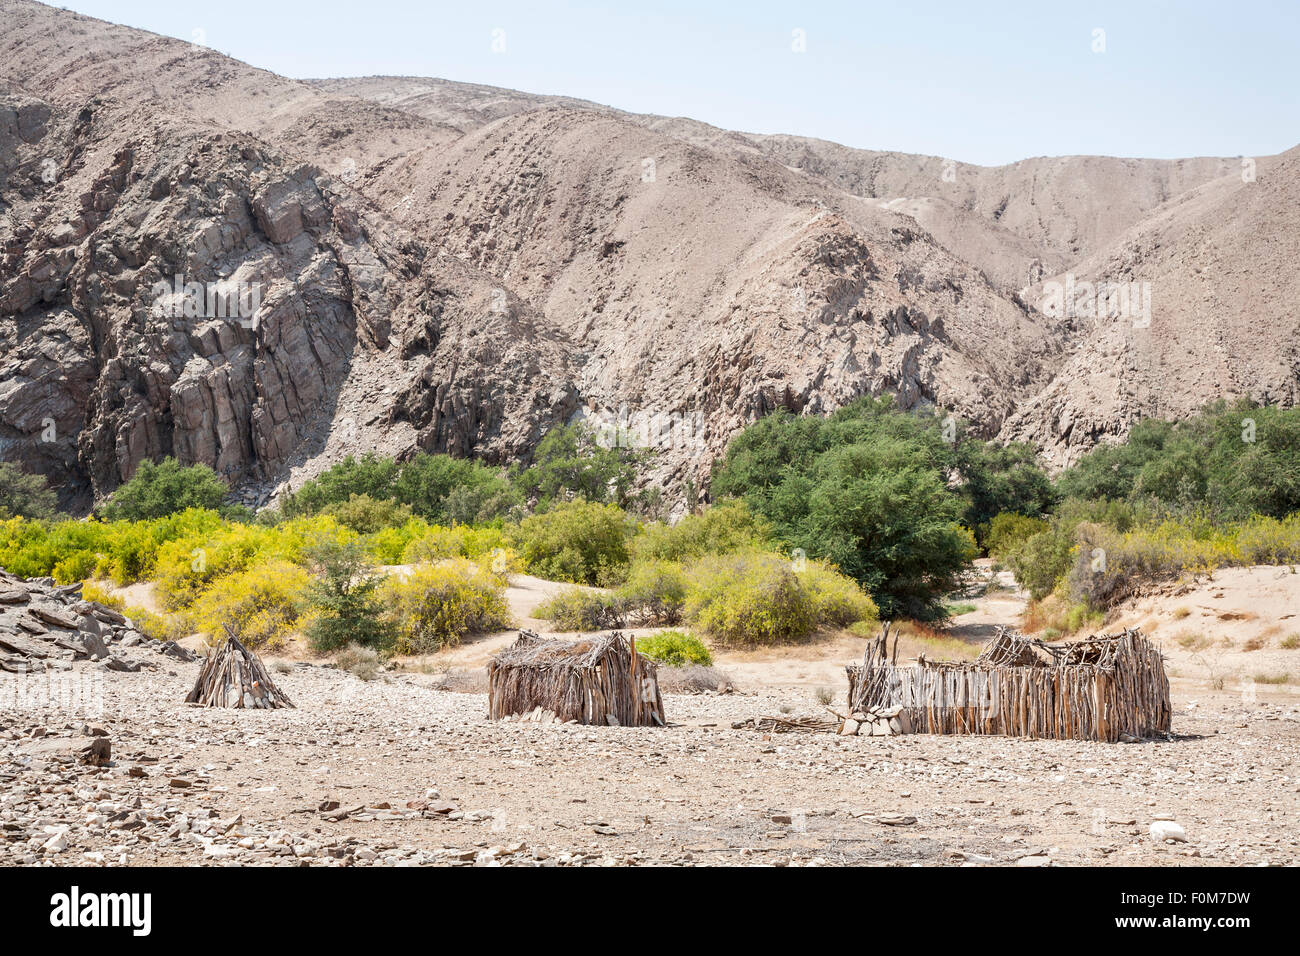 Angolan lifestyle and landscape: abandoned timber framed mud huts in rugged, arid desert terrain, southern Angola - Stock Image